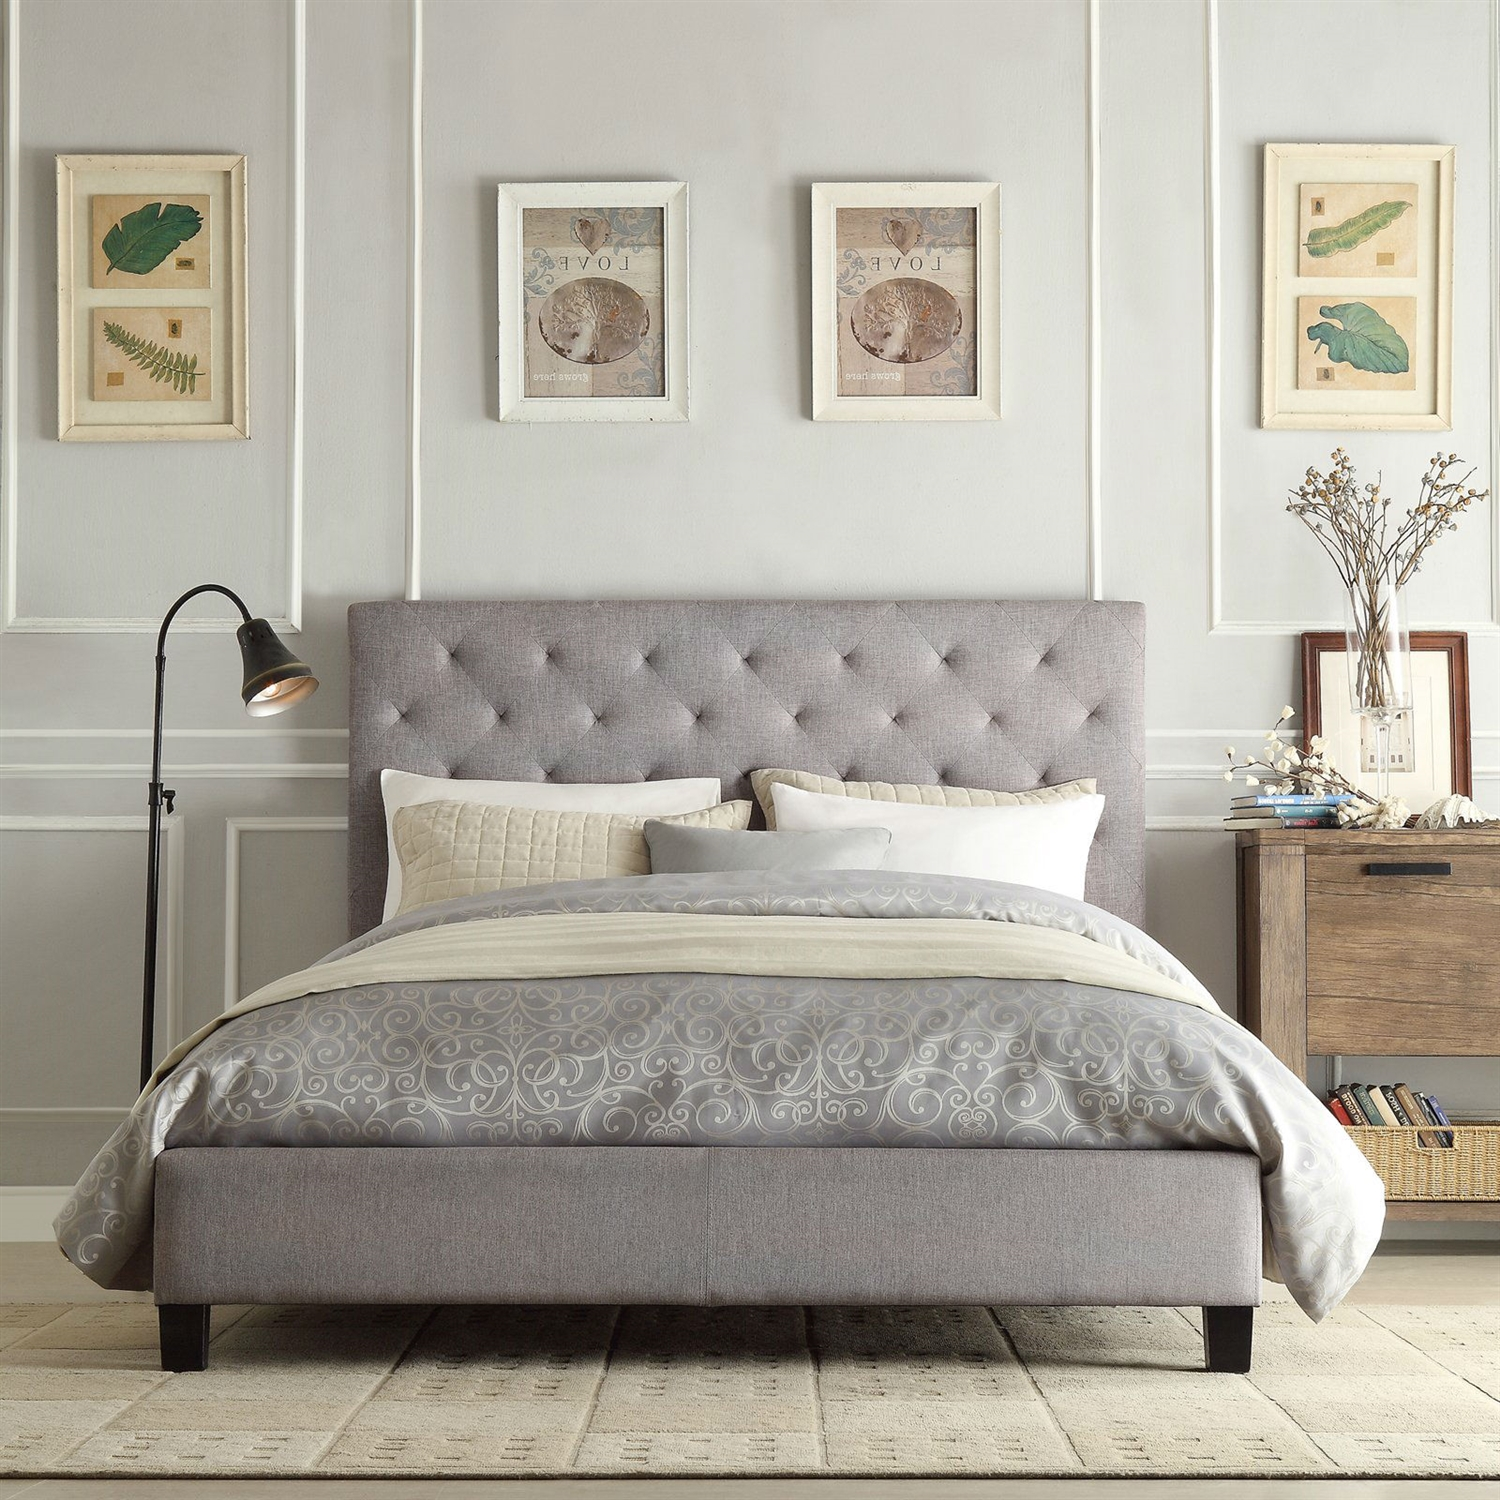 christopher headboard button tufted overstock garden free jezebel today knight full product home adjustable by queen shipping